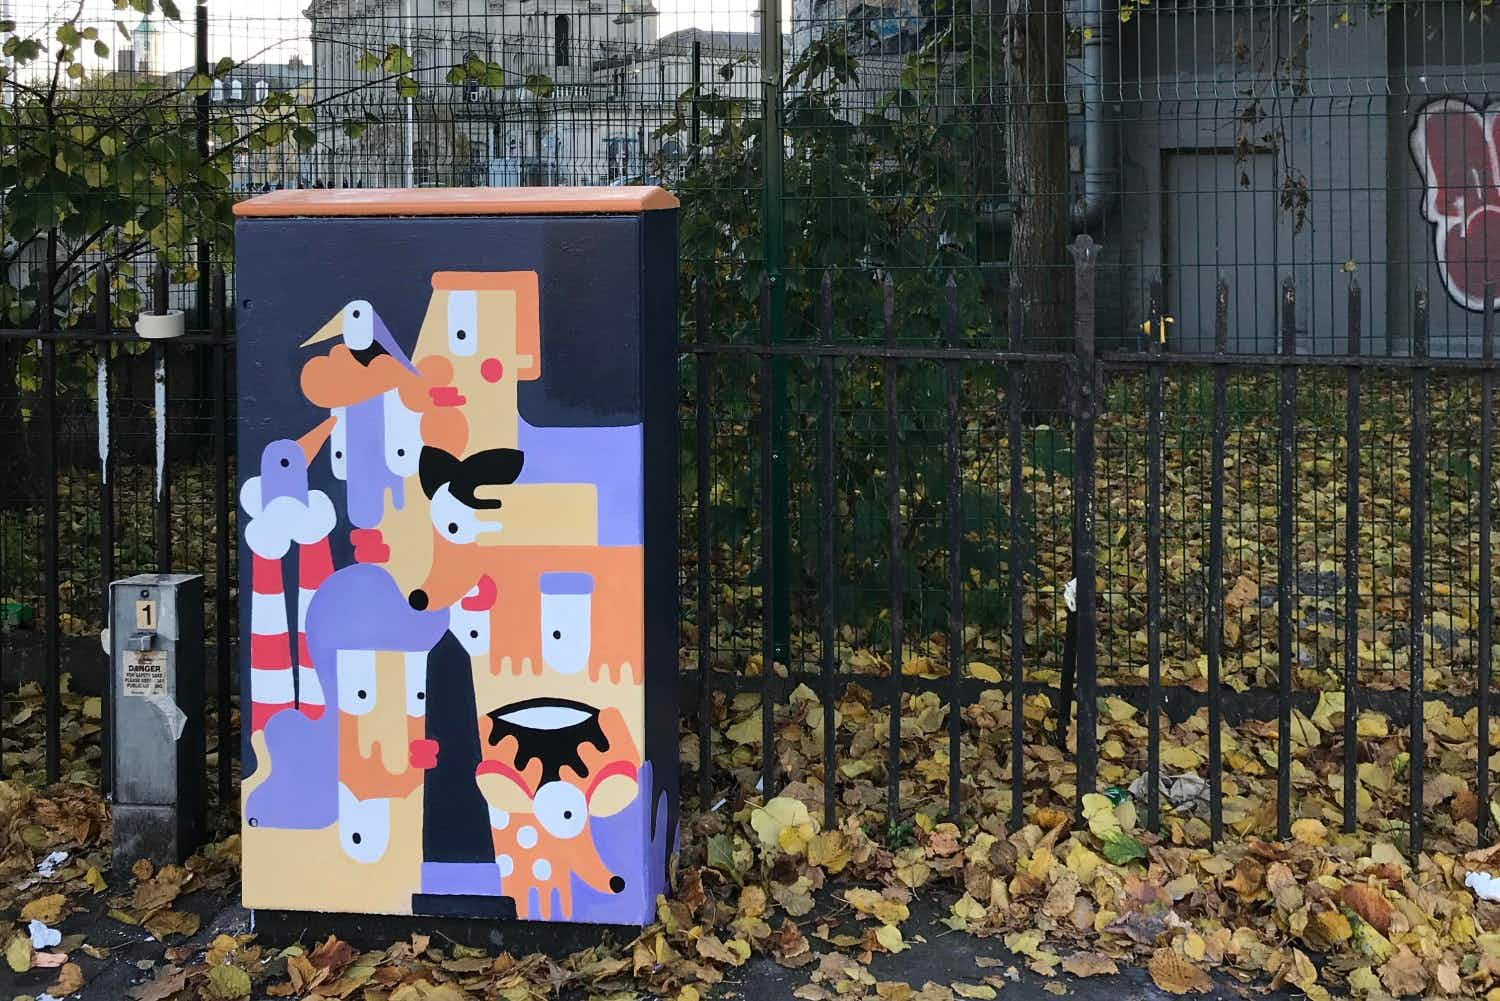 Dublin's grey traffic light control boxes are getting a colourful makeover